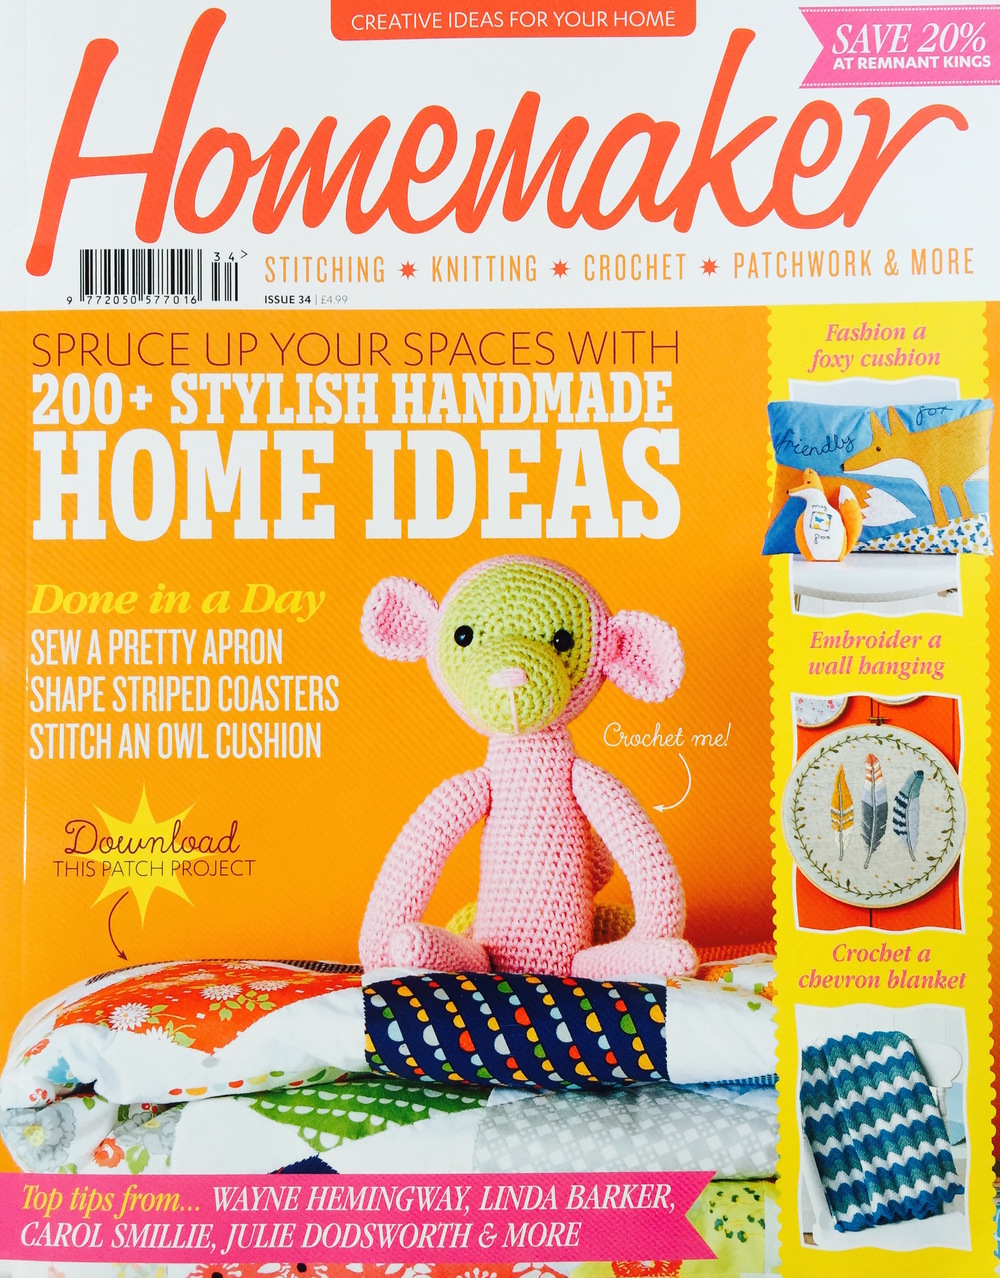 July 2015 - Homemaker magazine. Issue 34. Fabric featured in 'Masterclass' feature.